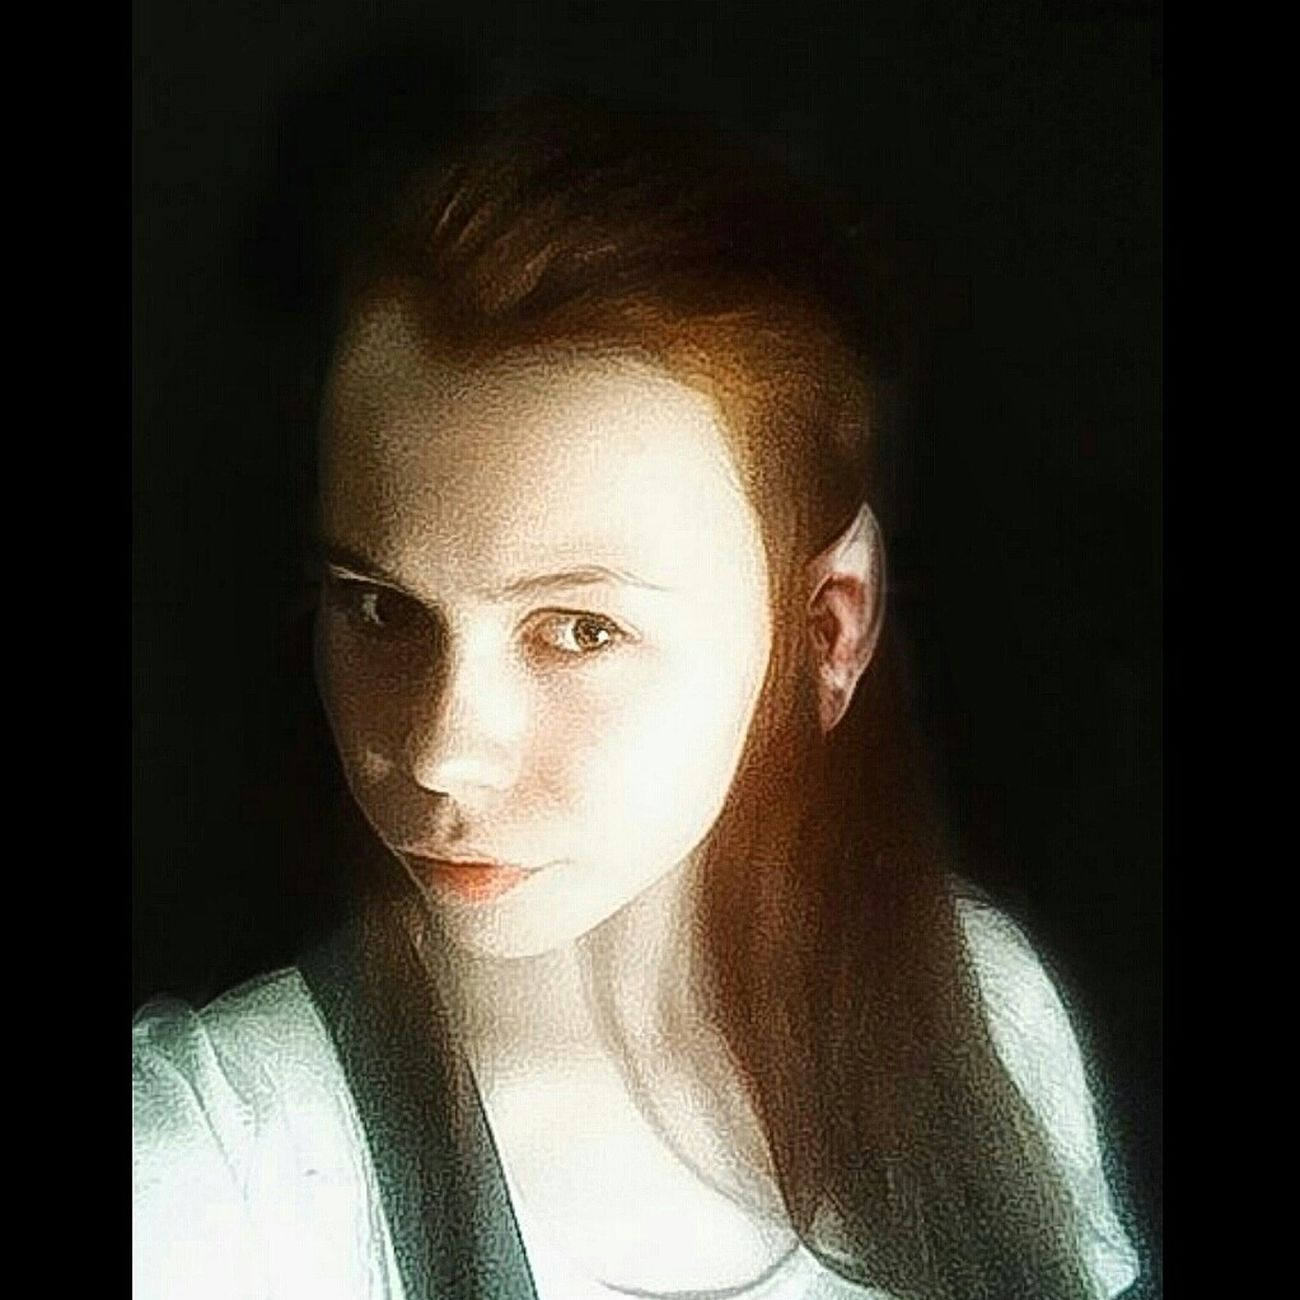 Tauriel or Elrond? Tauriel Elrond Hobbit The Hobbit TheLordOfTheRings Cosplay